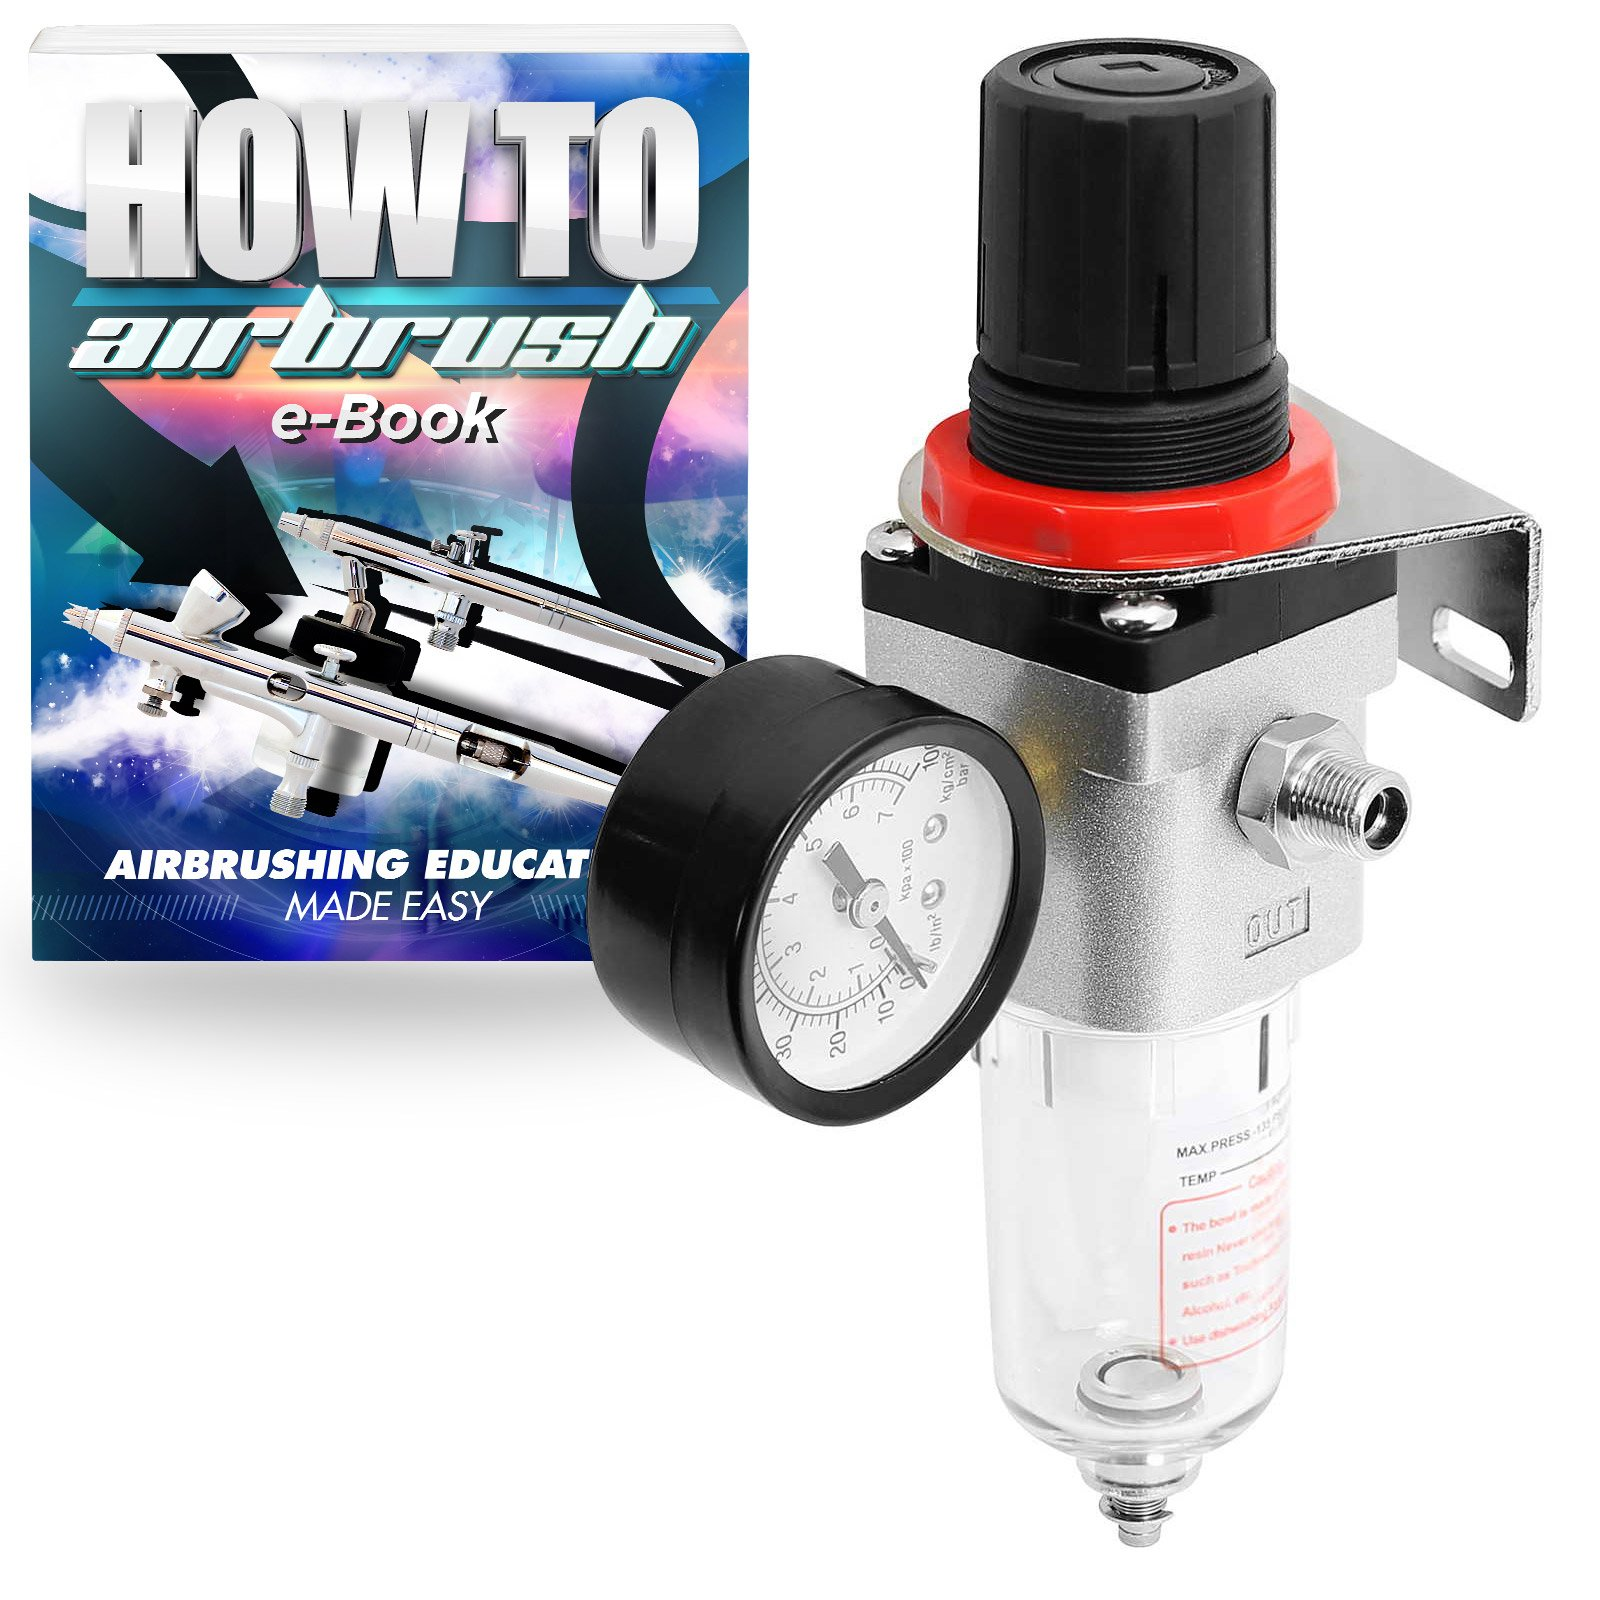 PointZero Pro Airbrush Air Compressor Regulator with Water-Trap Filter by PointZero Airbrush